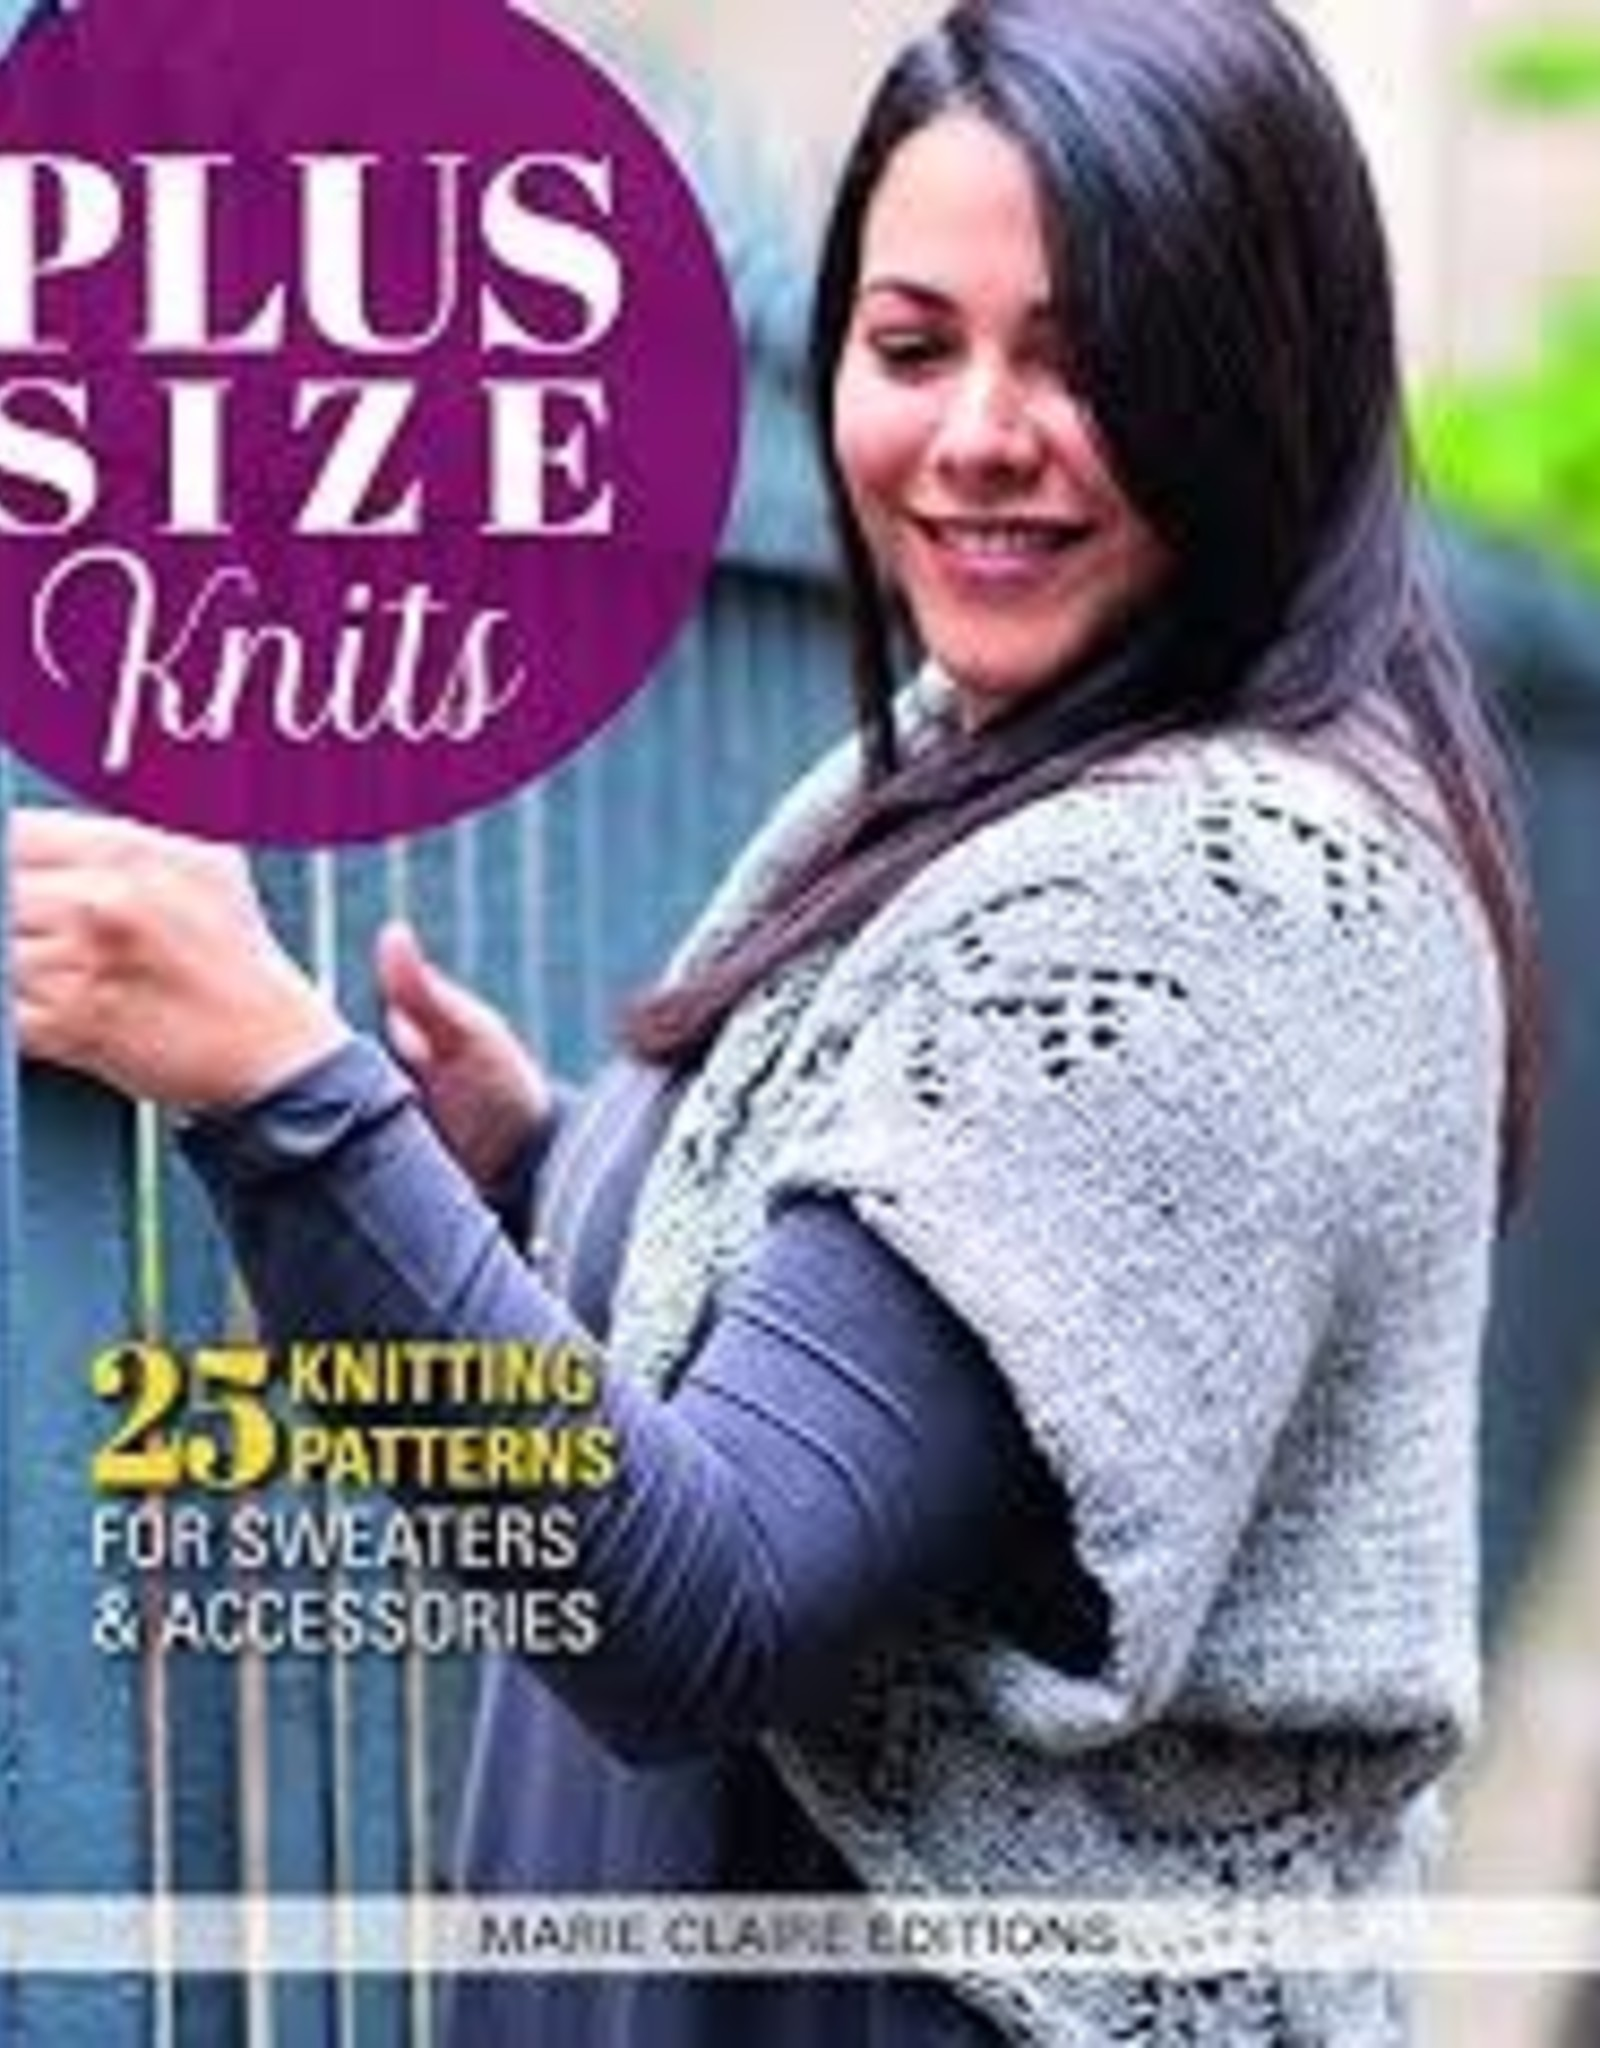 Ingram Plus Size Knits: 25 Knitting Patterns for Sweaters & Accessories